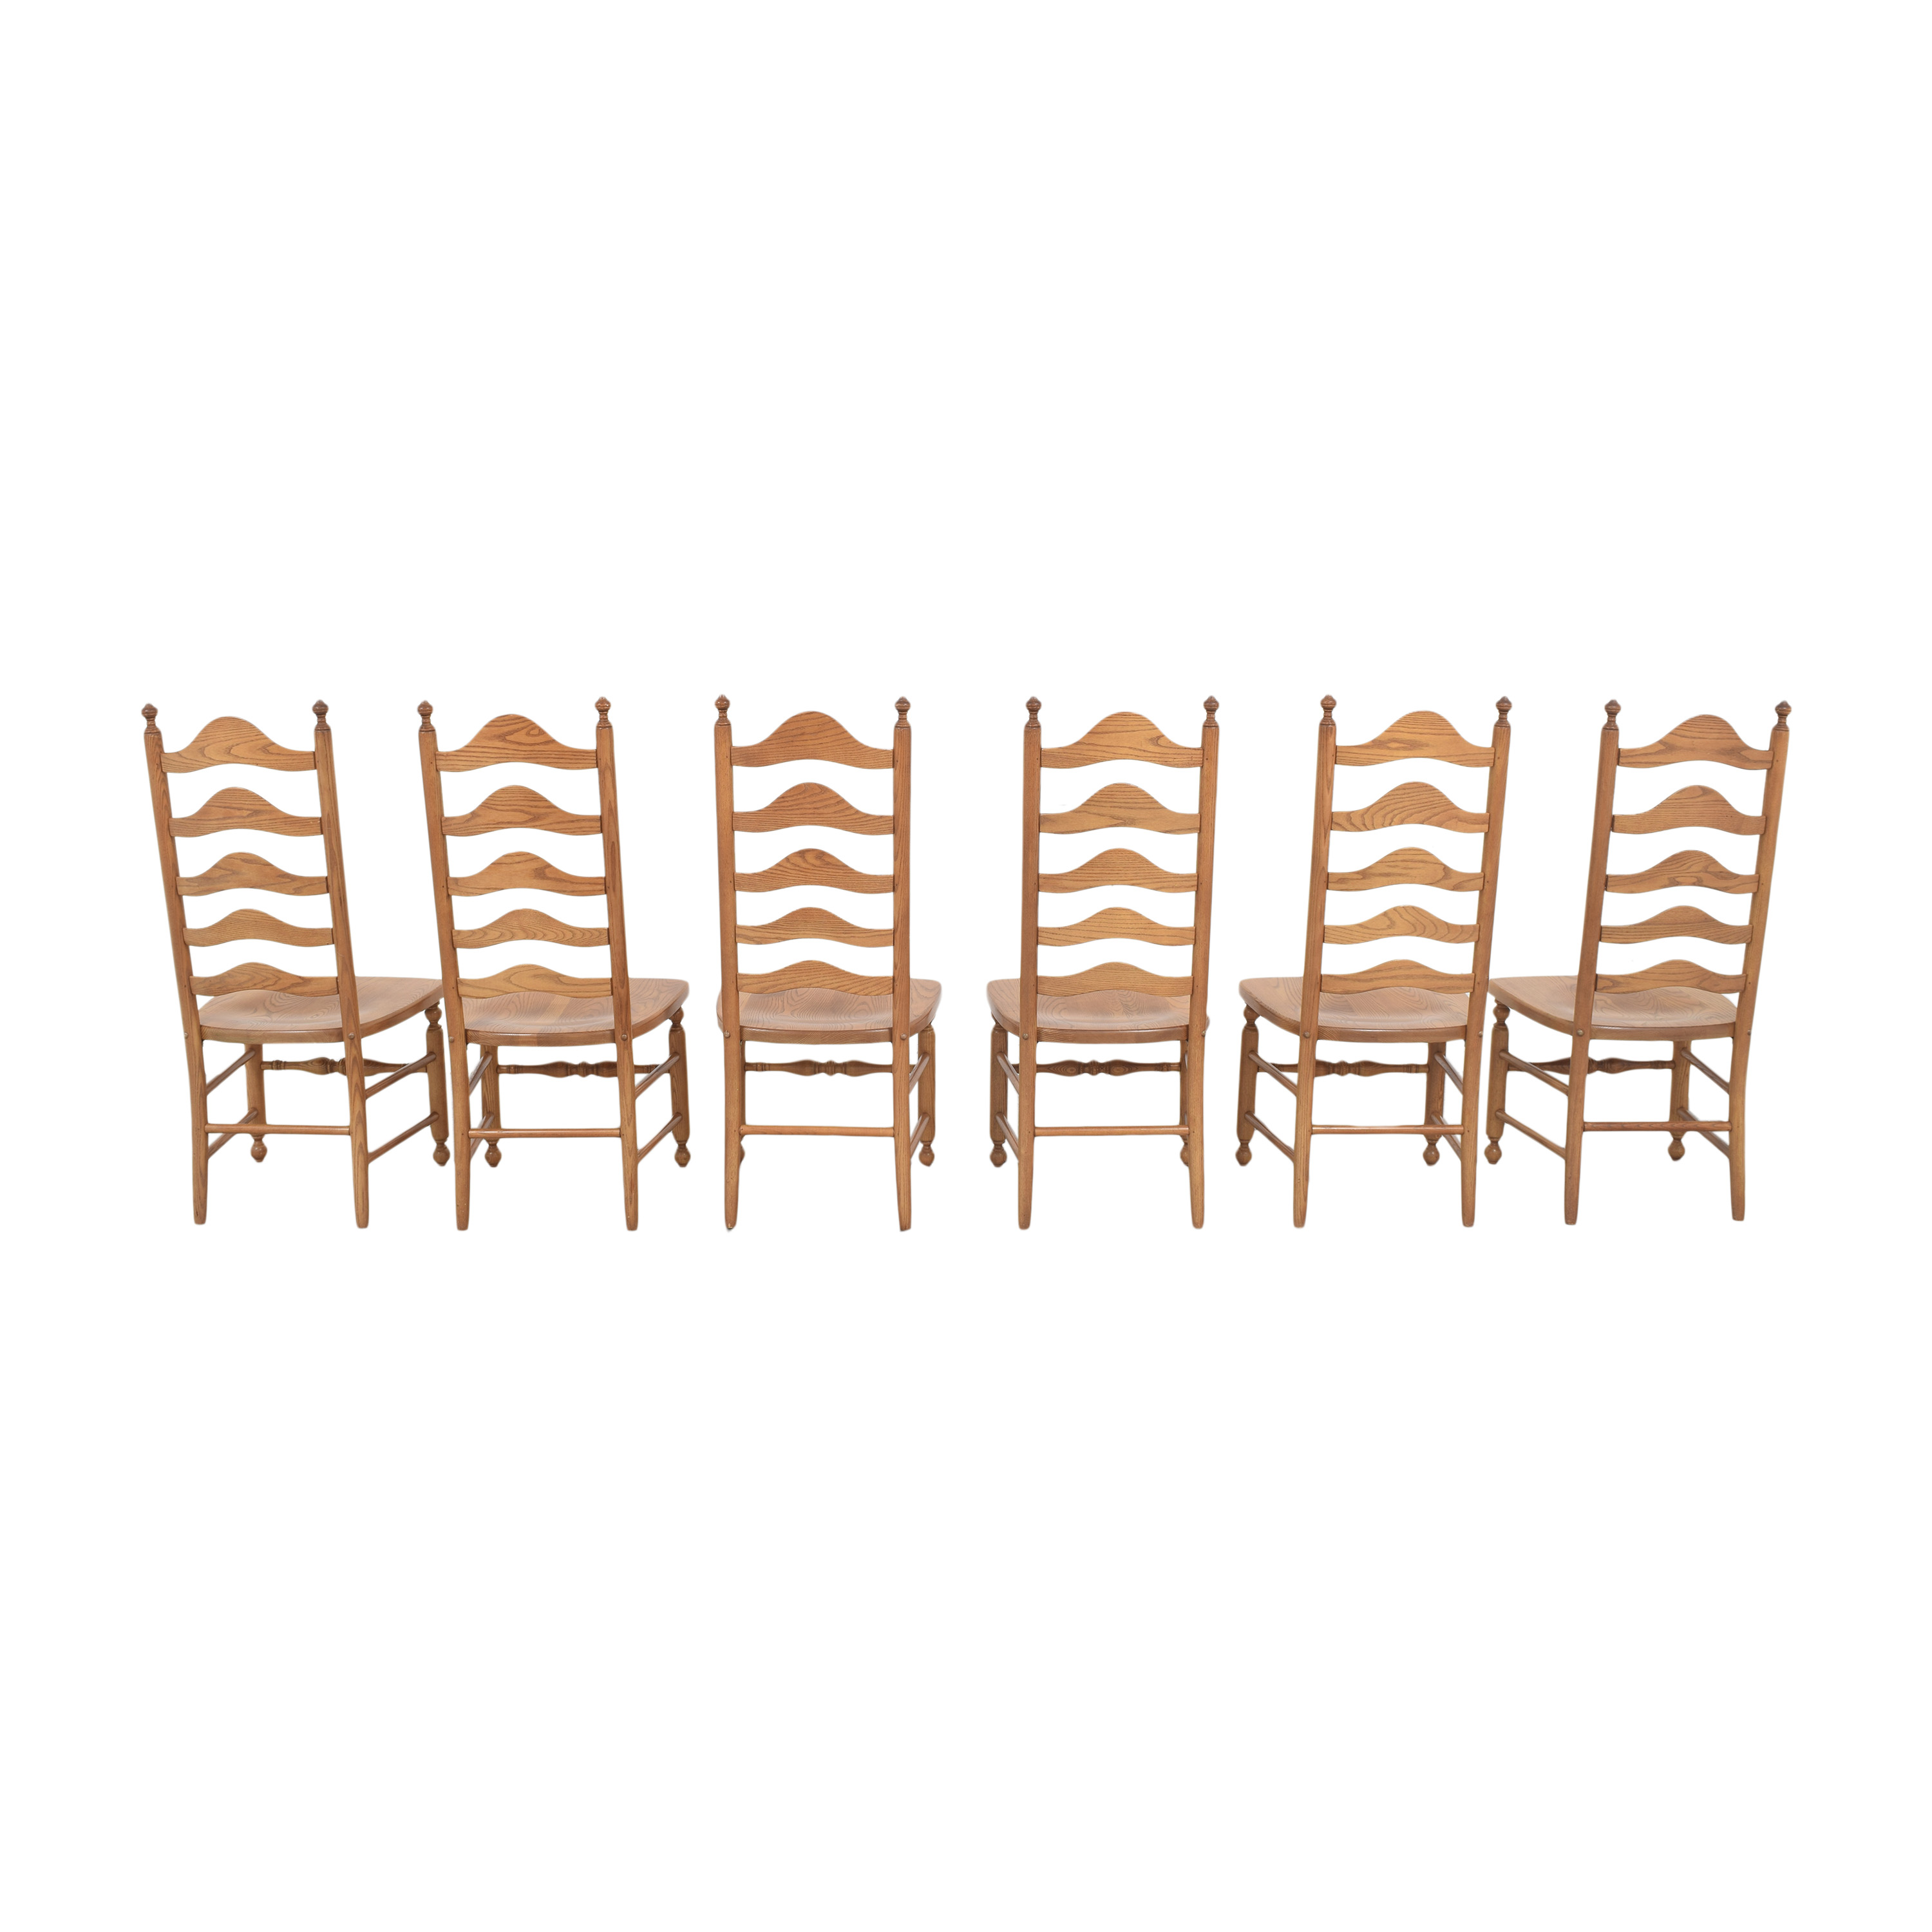 S. Bent & Bros Ladderback Dining Chairs S. Bent & Bros